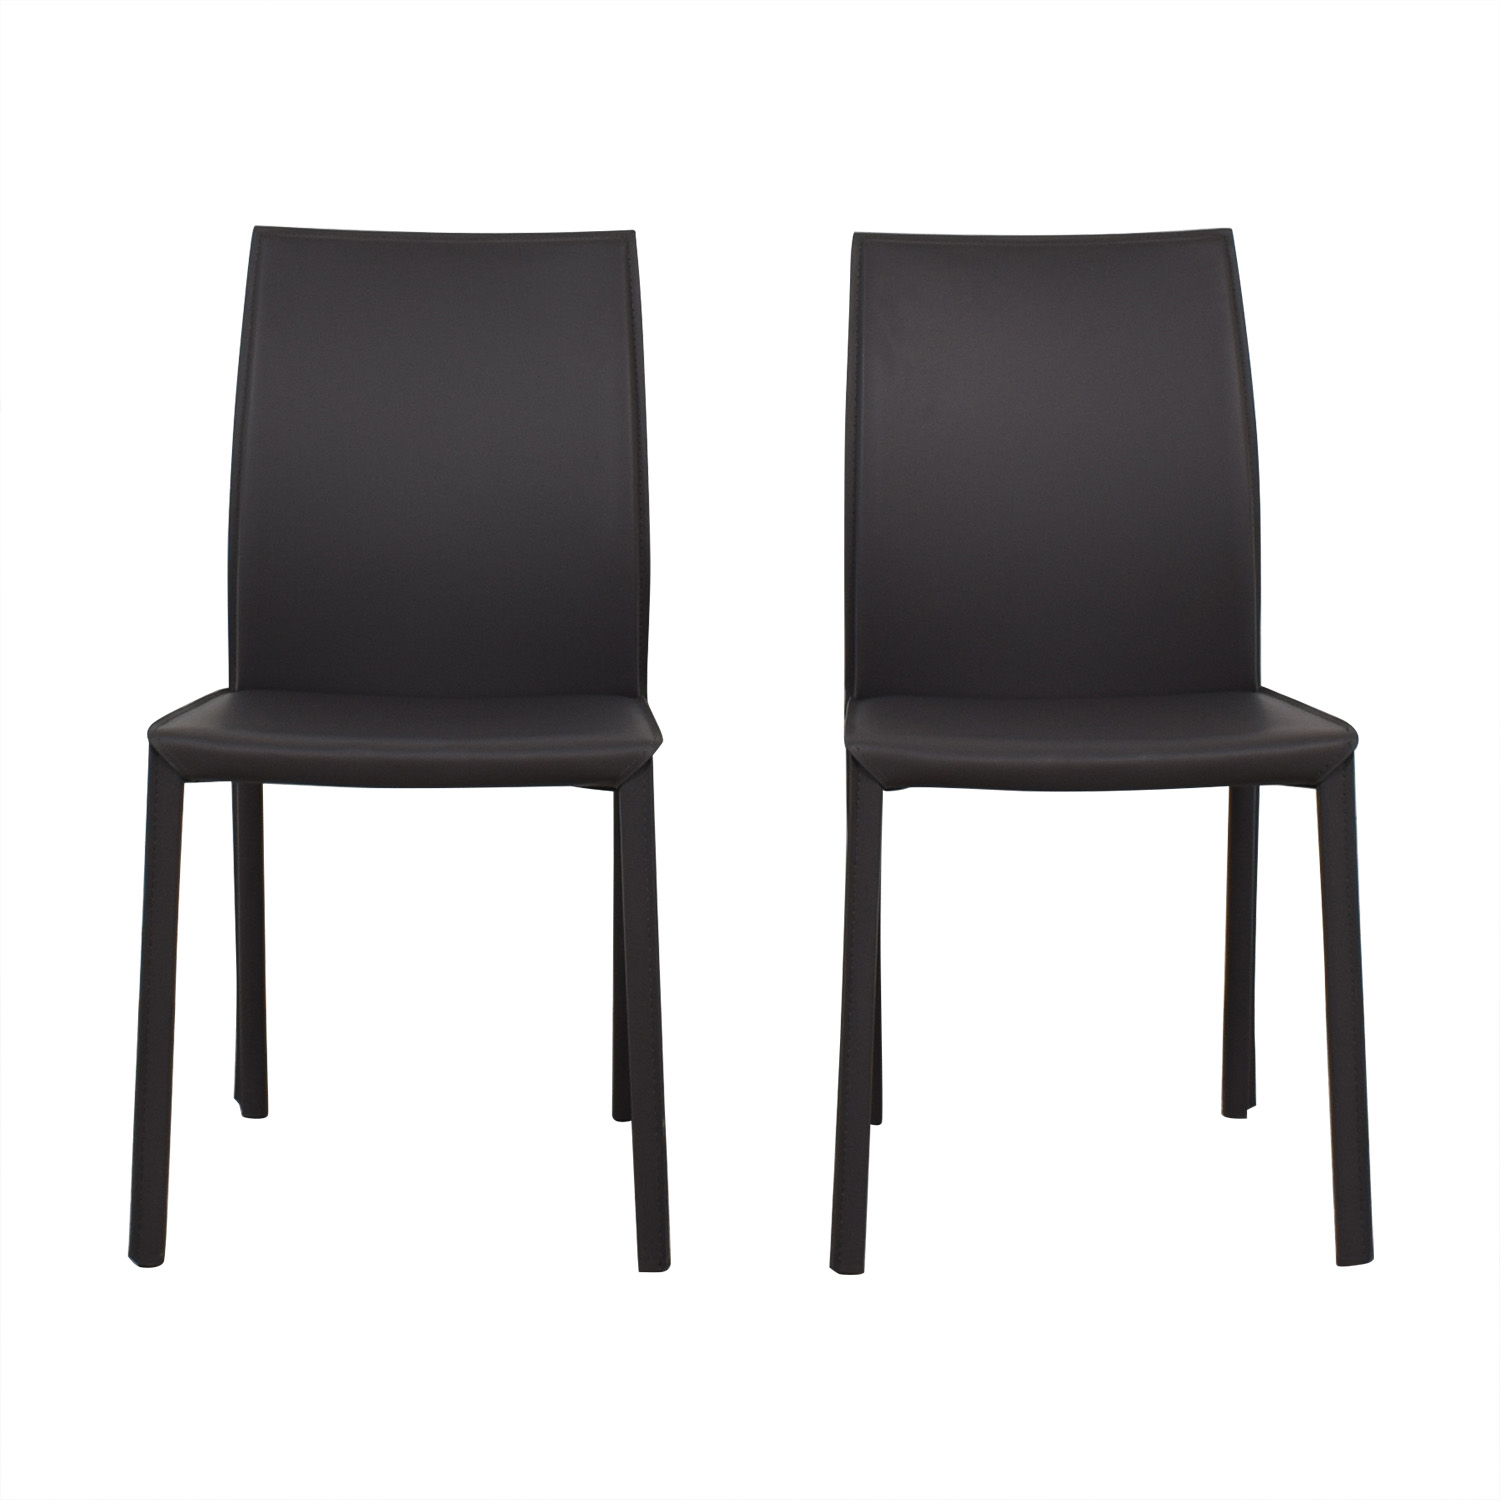 shop BoConcept BoConcept Grey Dining Chairs online